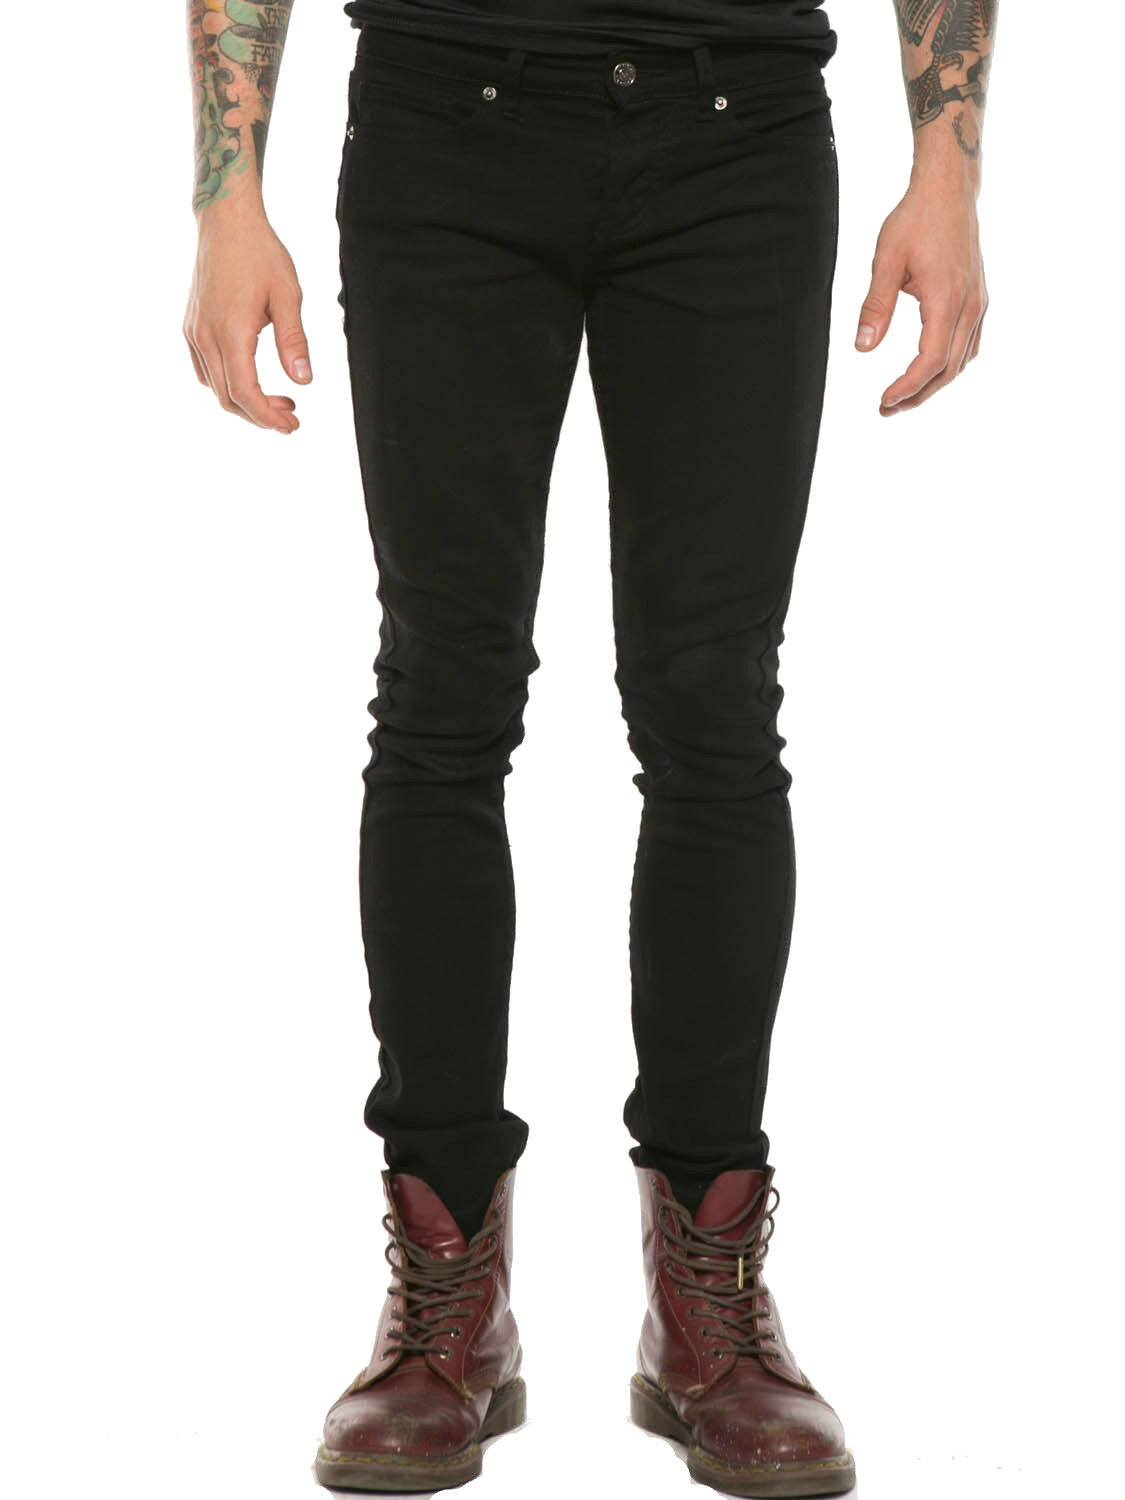 KILL CITY ROCKER FIT PEGGED SKINNY STRETCH GOTHIC PUNK STAGE JEANS PANTS BIKER Clothing, Shoes & Accessories